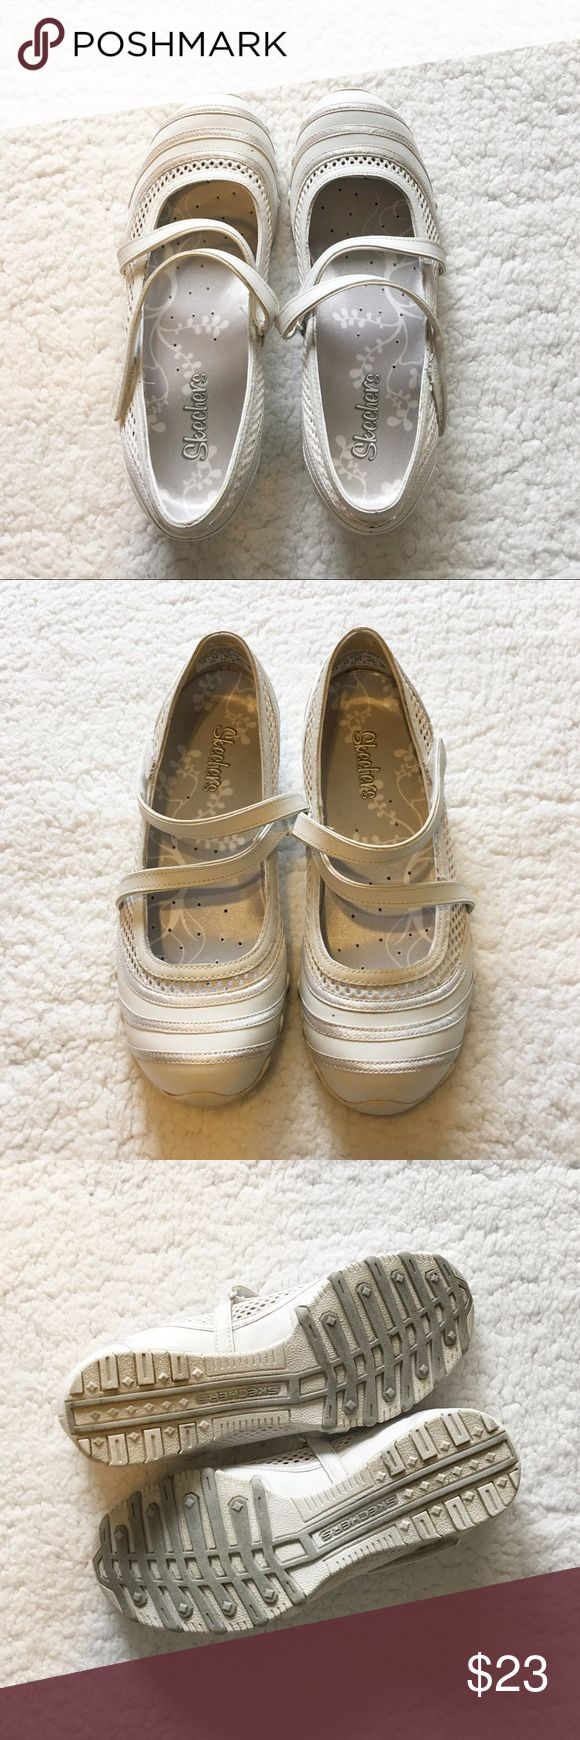 White Skechers Mary Jane strap sneakers, size 7.5 Great condition Skechers Mary Jane sneakers in a size 7.5. Incredibly comfortable! White marches just about anything too! Only worn a few times. May need some brightening up with a magic eraser, but overall they're ready to be worn! Skechers Shoes Sneakers